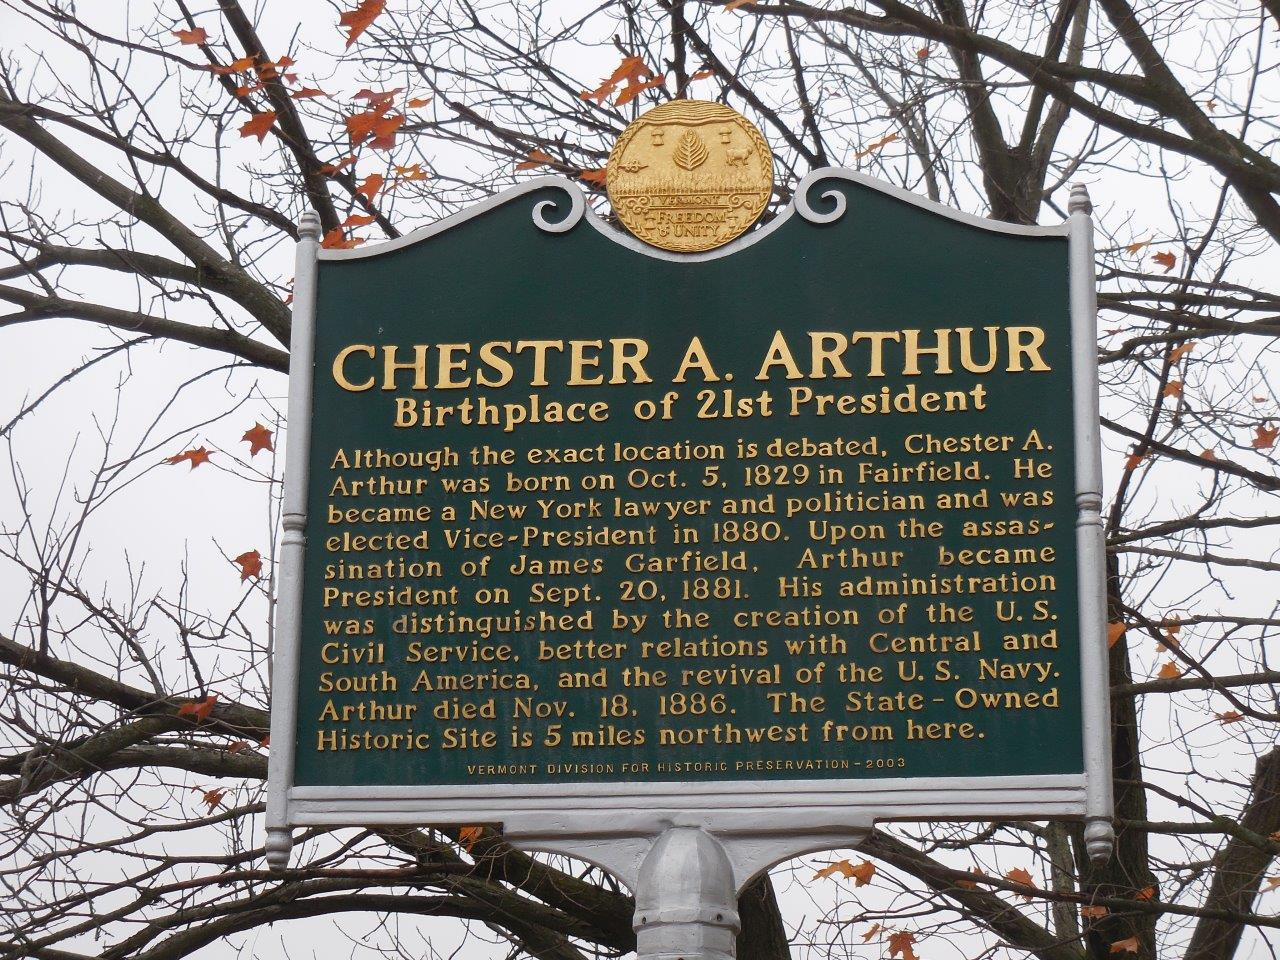 photo of Chester Arthur's birthplace